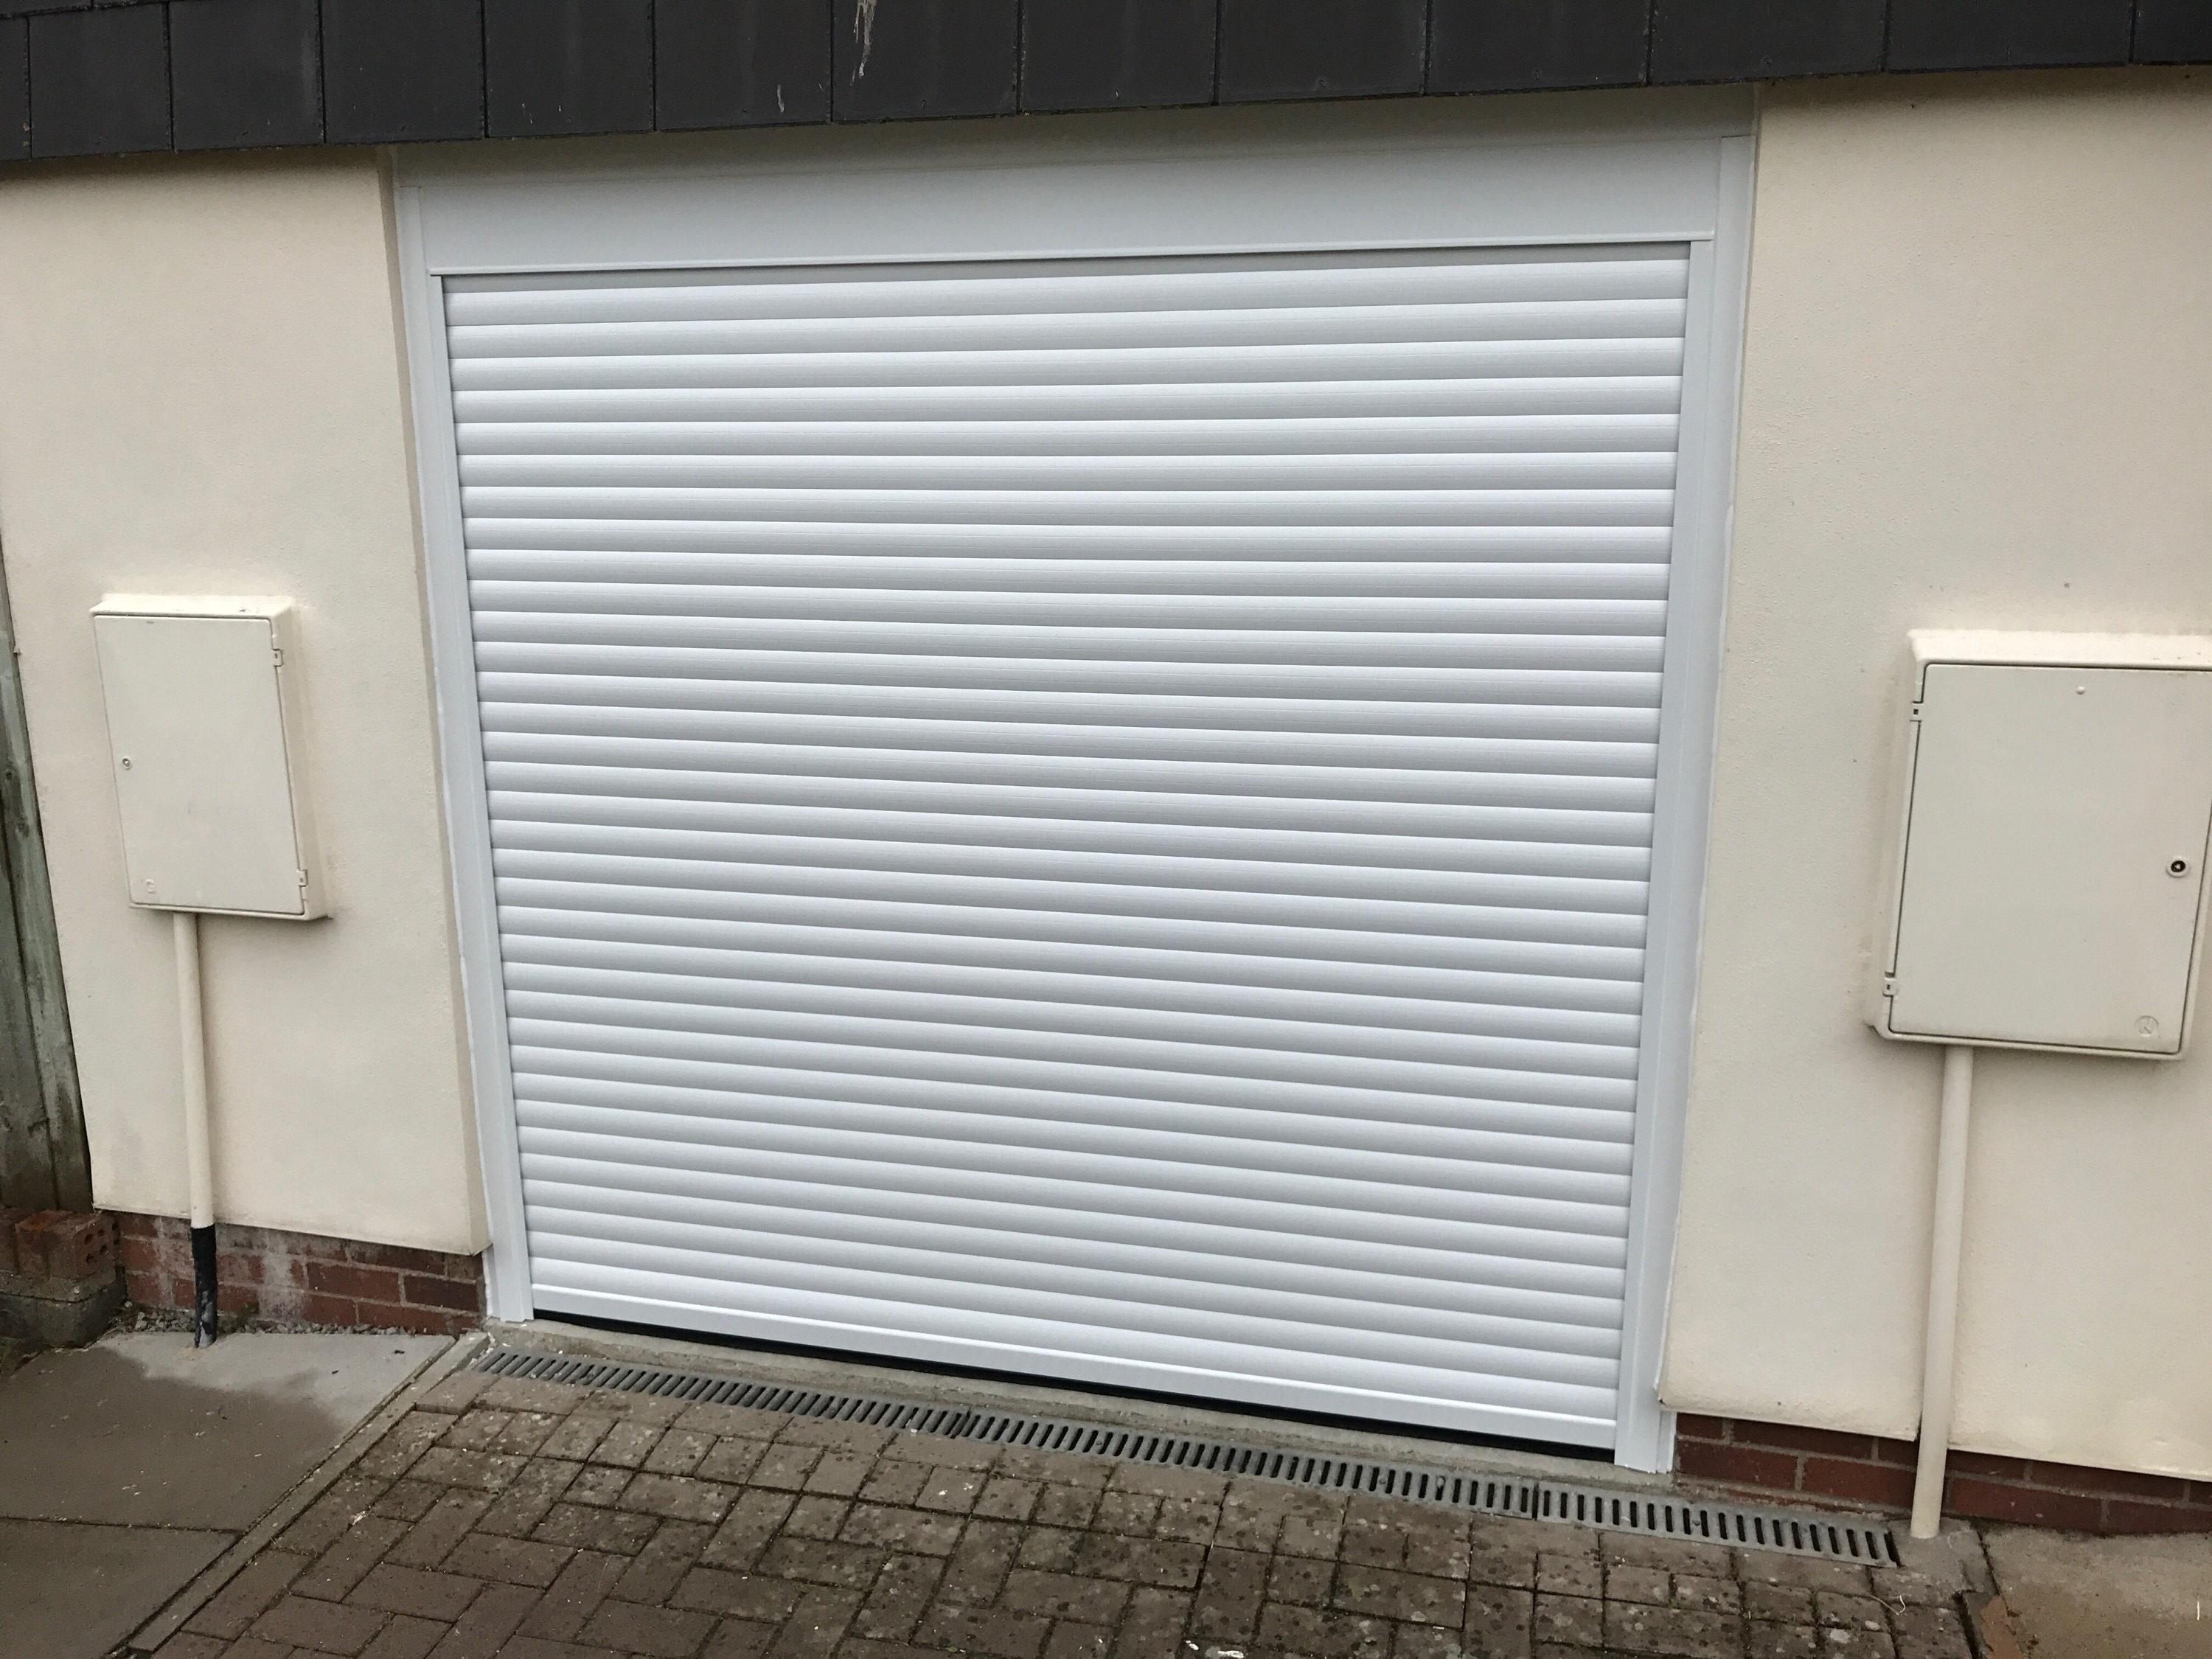 ALLUGUARD COMPACT INSULATED ROLLER DOOR IN WHITE C/W MATCHING GUIDES \u0026 BOX & Image Gallery \u2013 Garage Doors